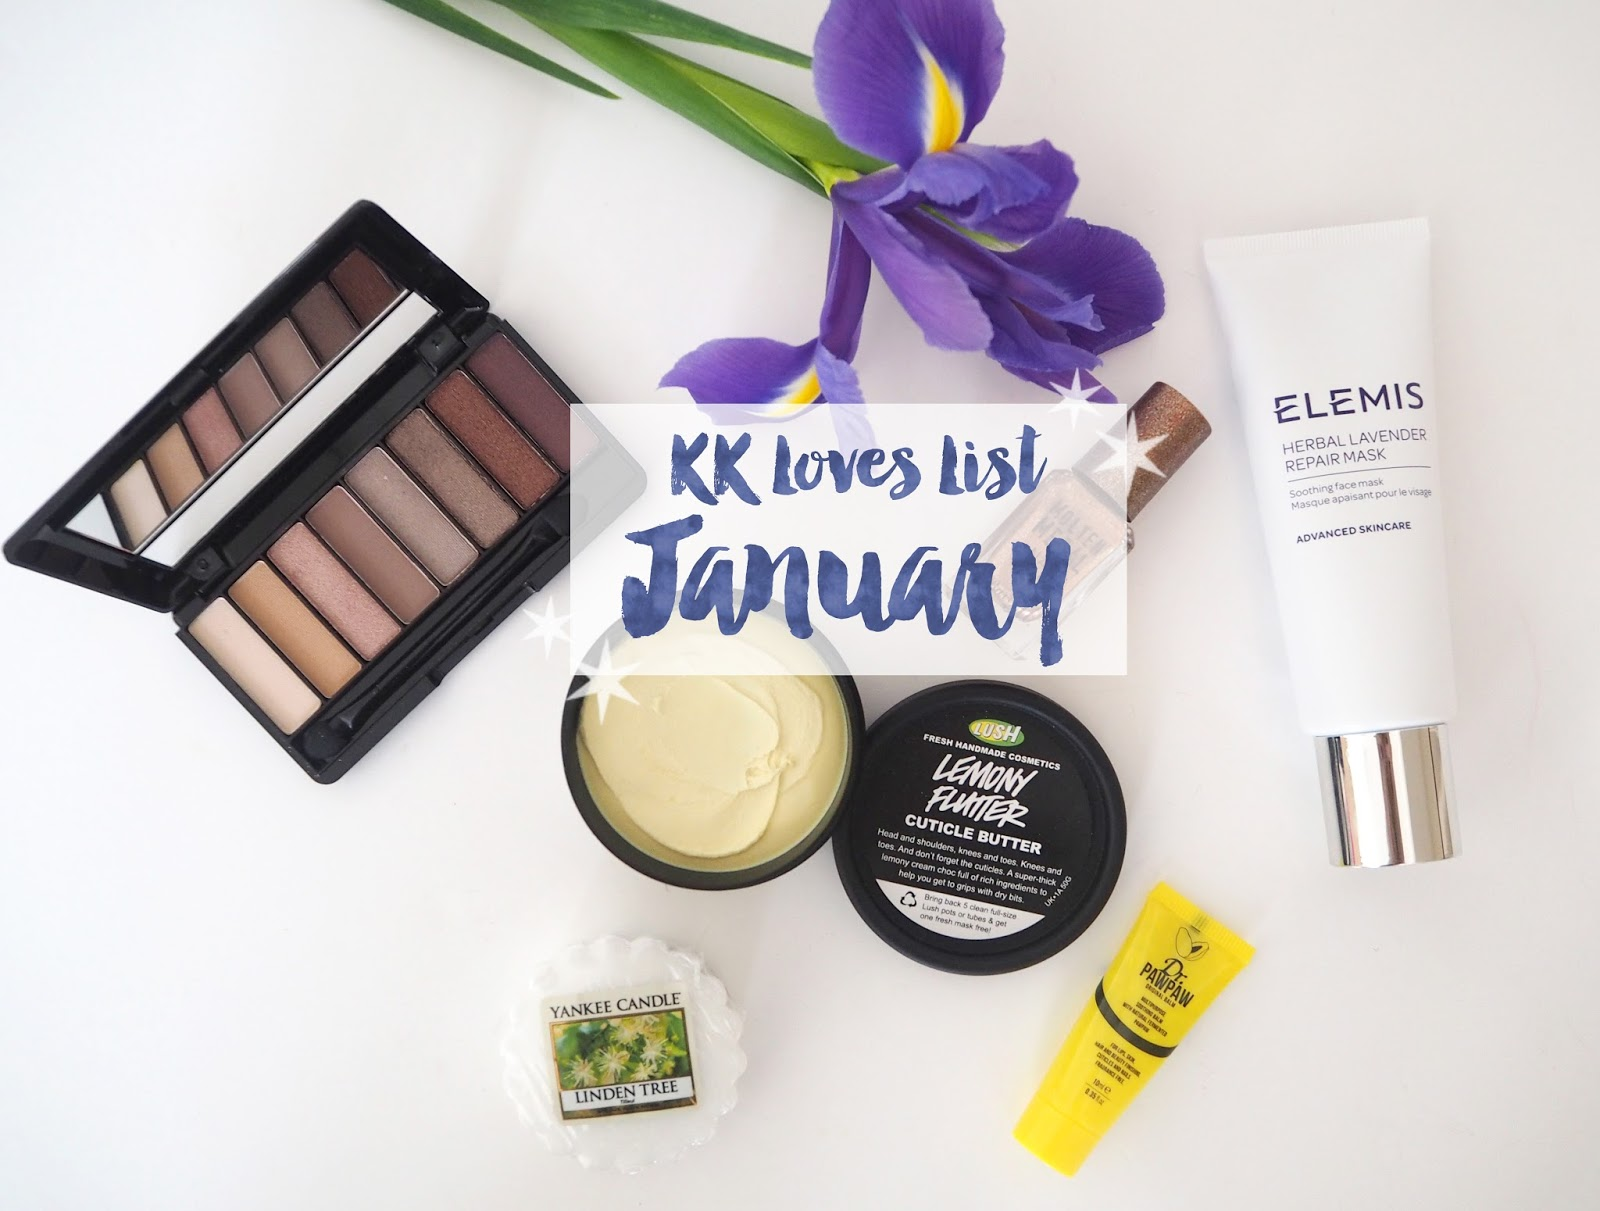 Loves List: January, Katie Kirk Loves, UK Blogger, Lifestyle Blogger, Beauty Blogger, Swatches, Rimmel London, Dr Paw Paw, Yankee Candle, Linden Tree Wax Melt, Lush Cosmetics, Lemony Flutter Cuticle Butter, Barry M Copper Mine Nail Polish, Nail Blogger, Elemis Herbal Lavender Repair Mask,